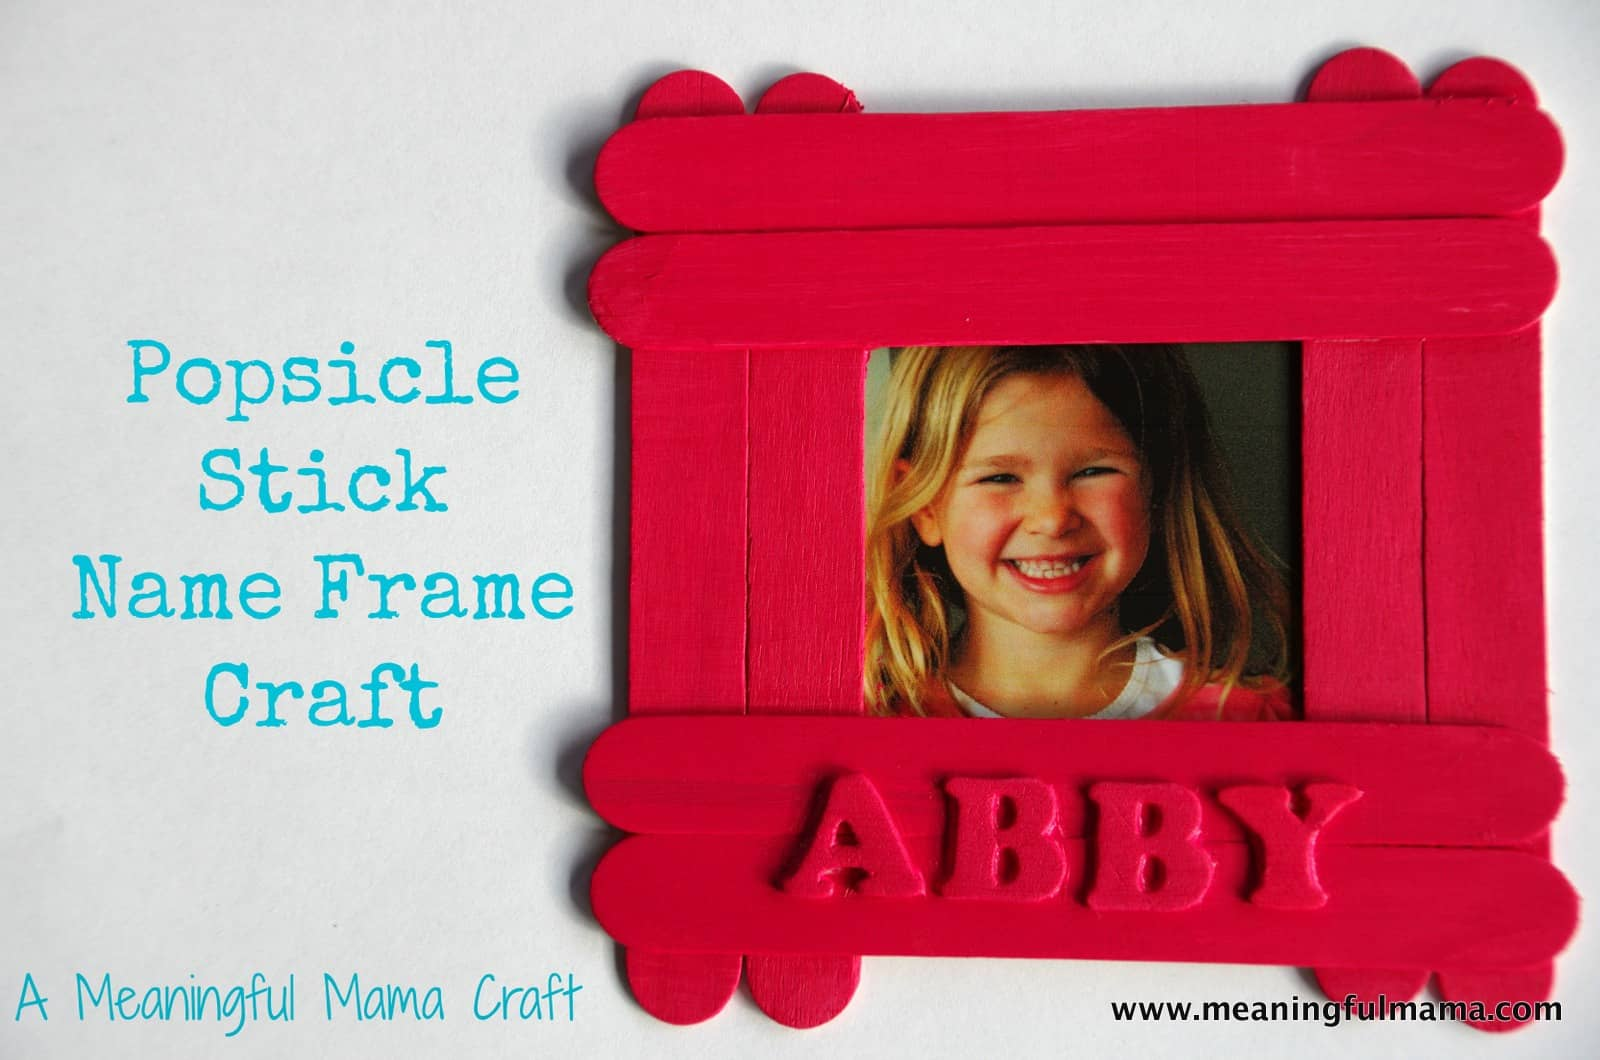 Popsicle stick name frame craft this popsicle stick name frame craft is easy to do and will be popular with your kids the other day we received a package from craft project ideas jeuxipadfo Gallery